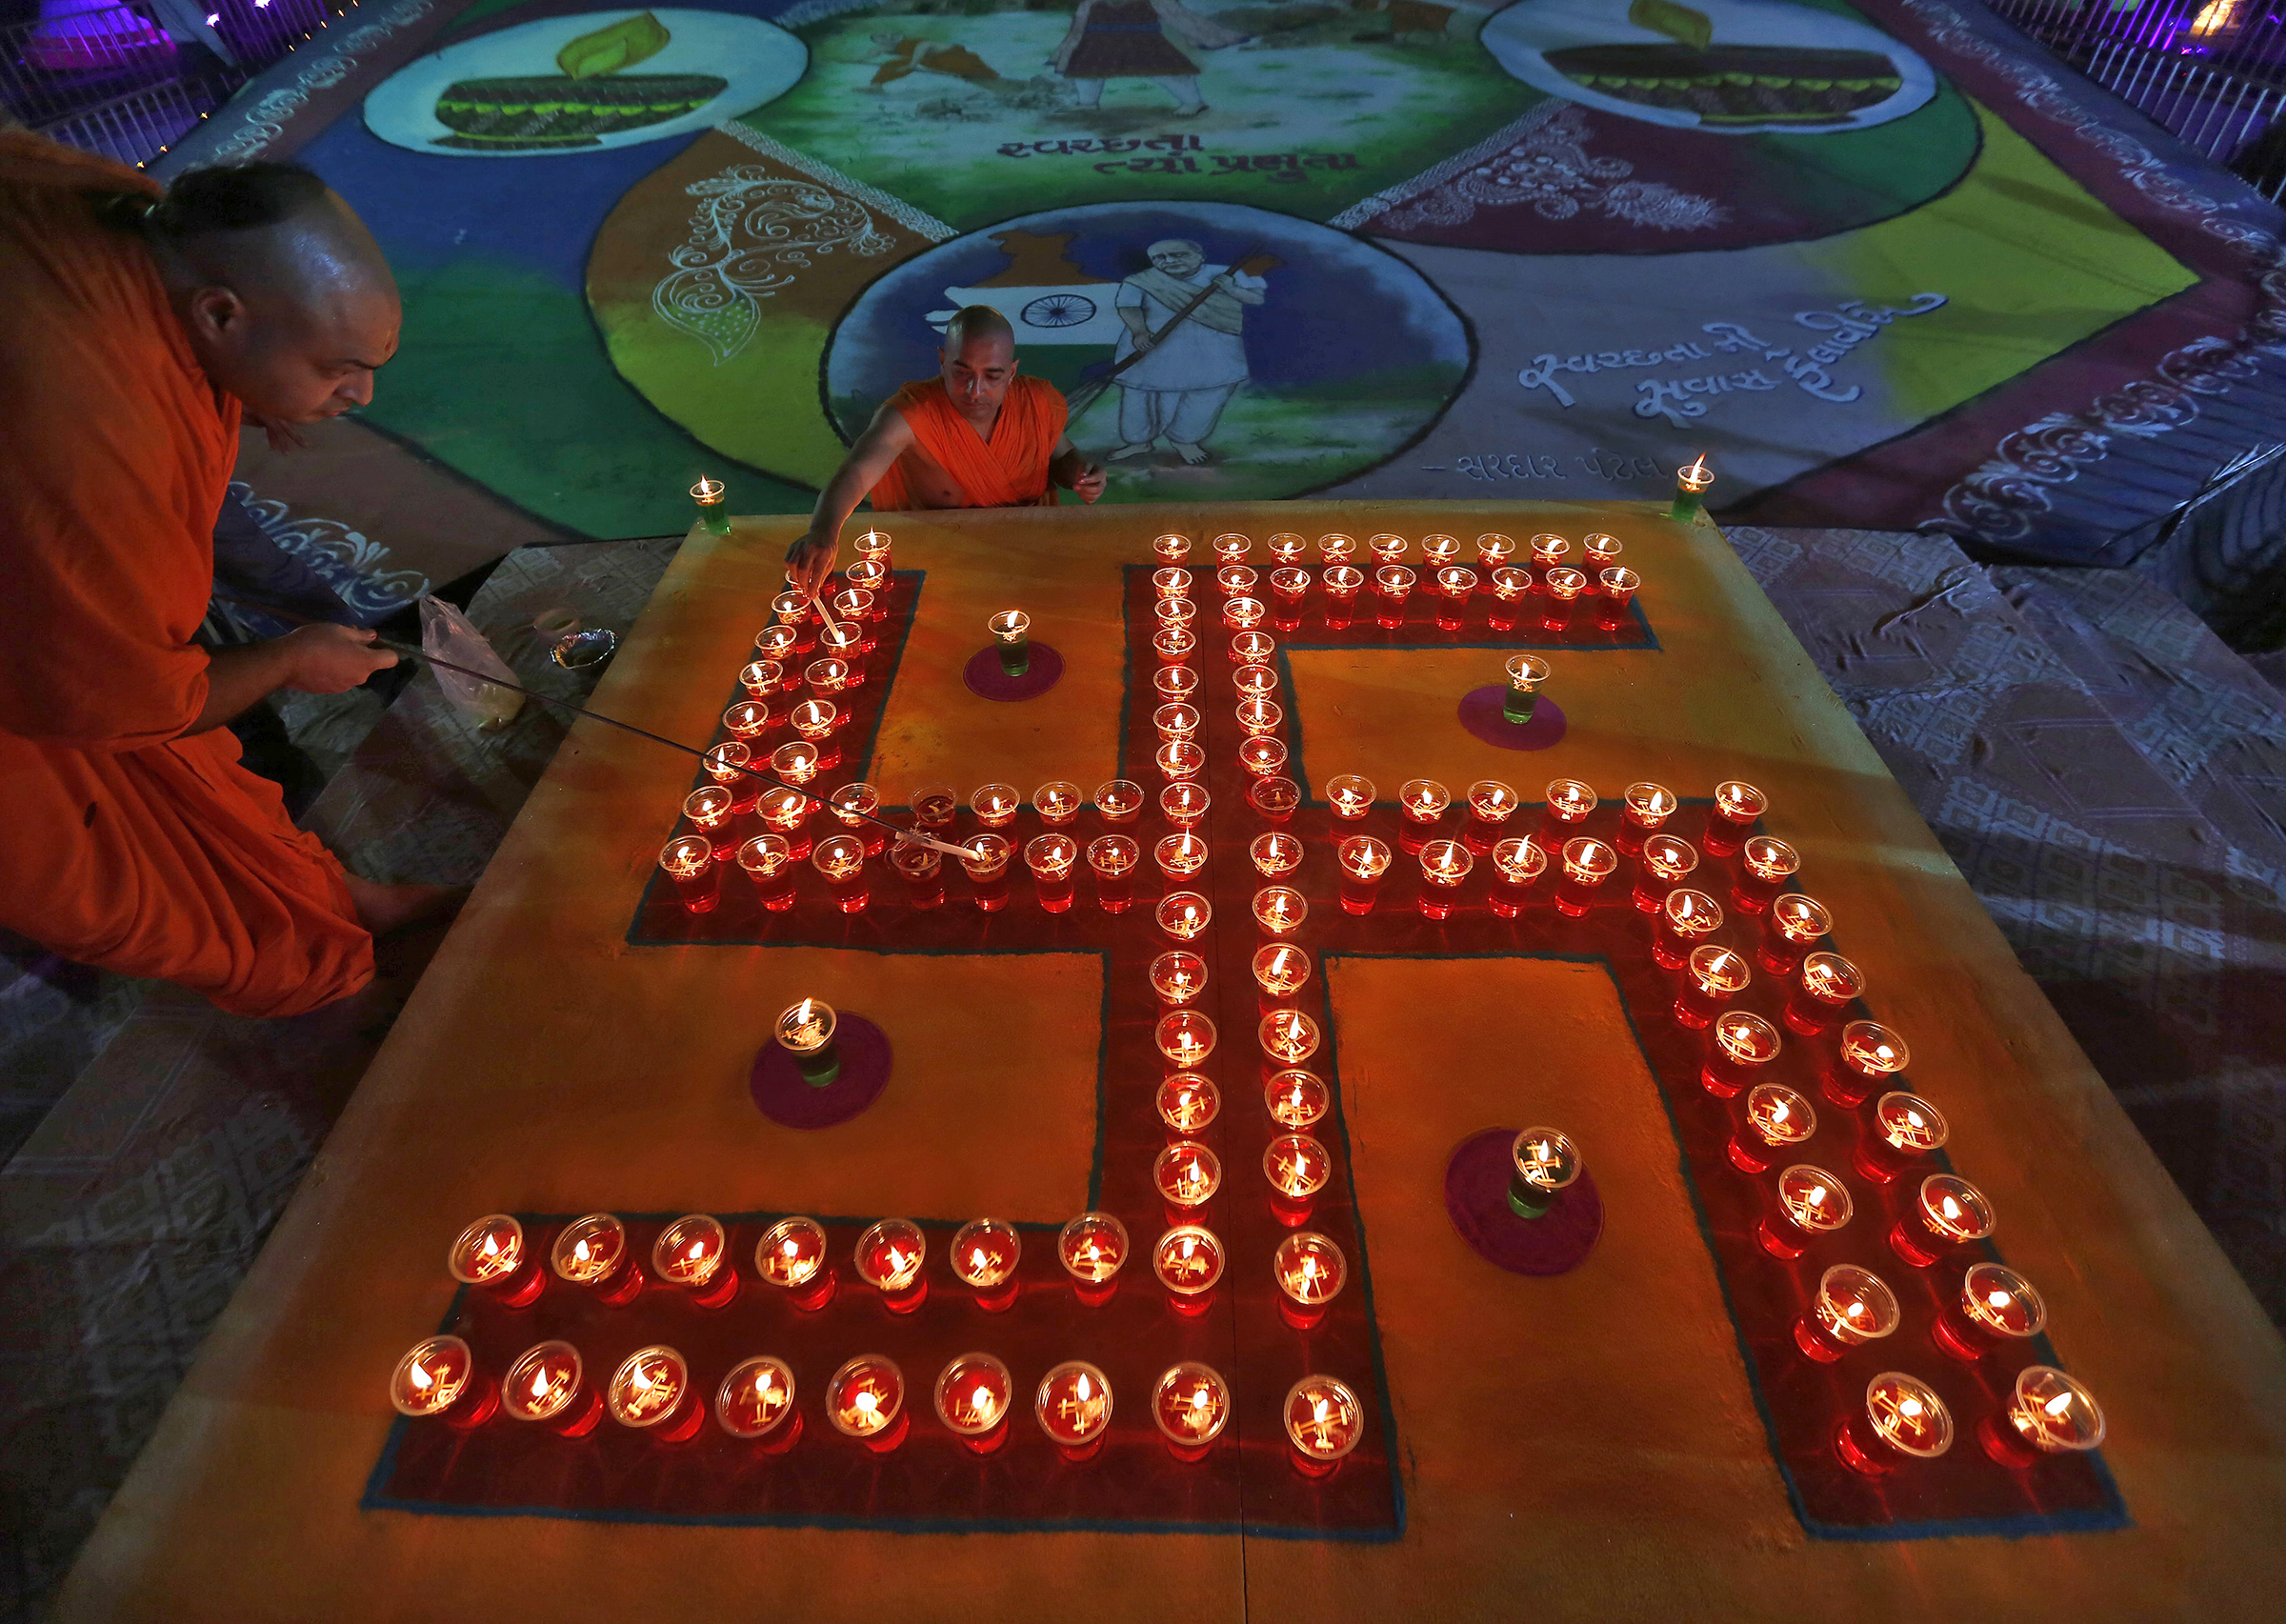 PRINT Hindu priests light oil lamps in a formation of the